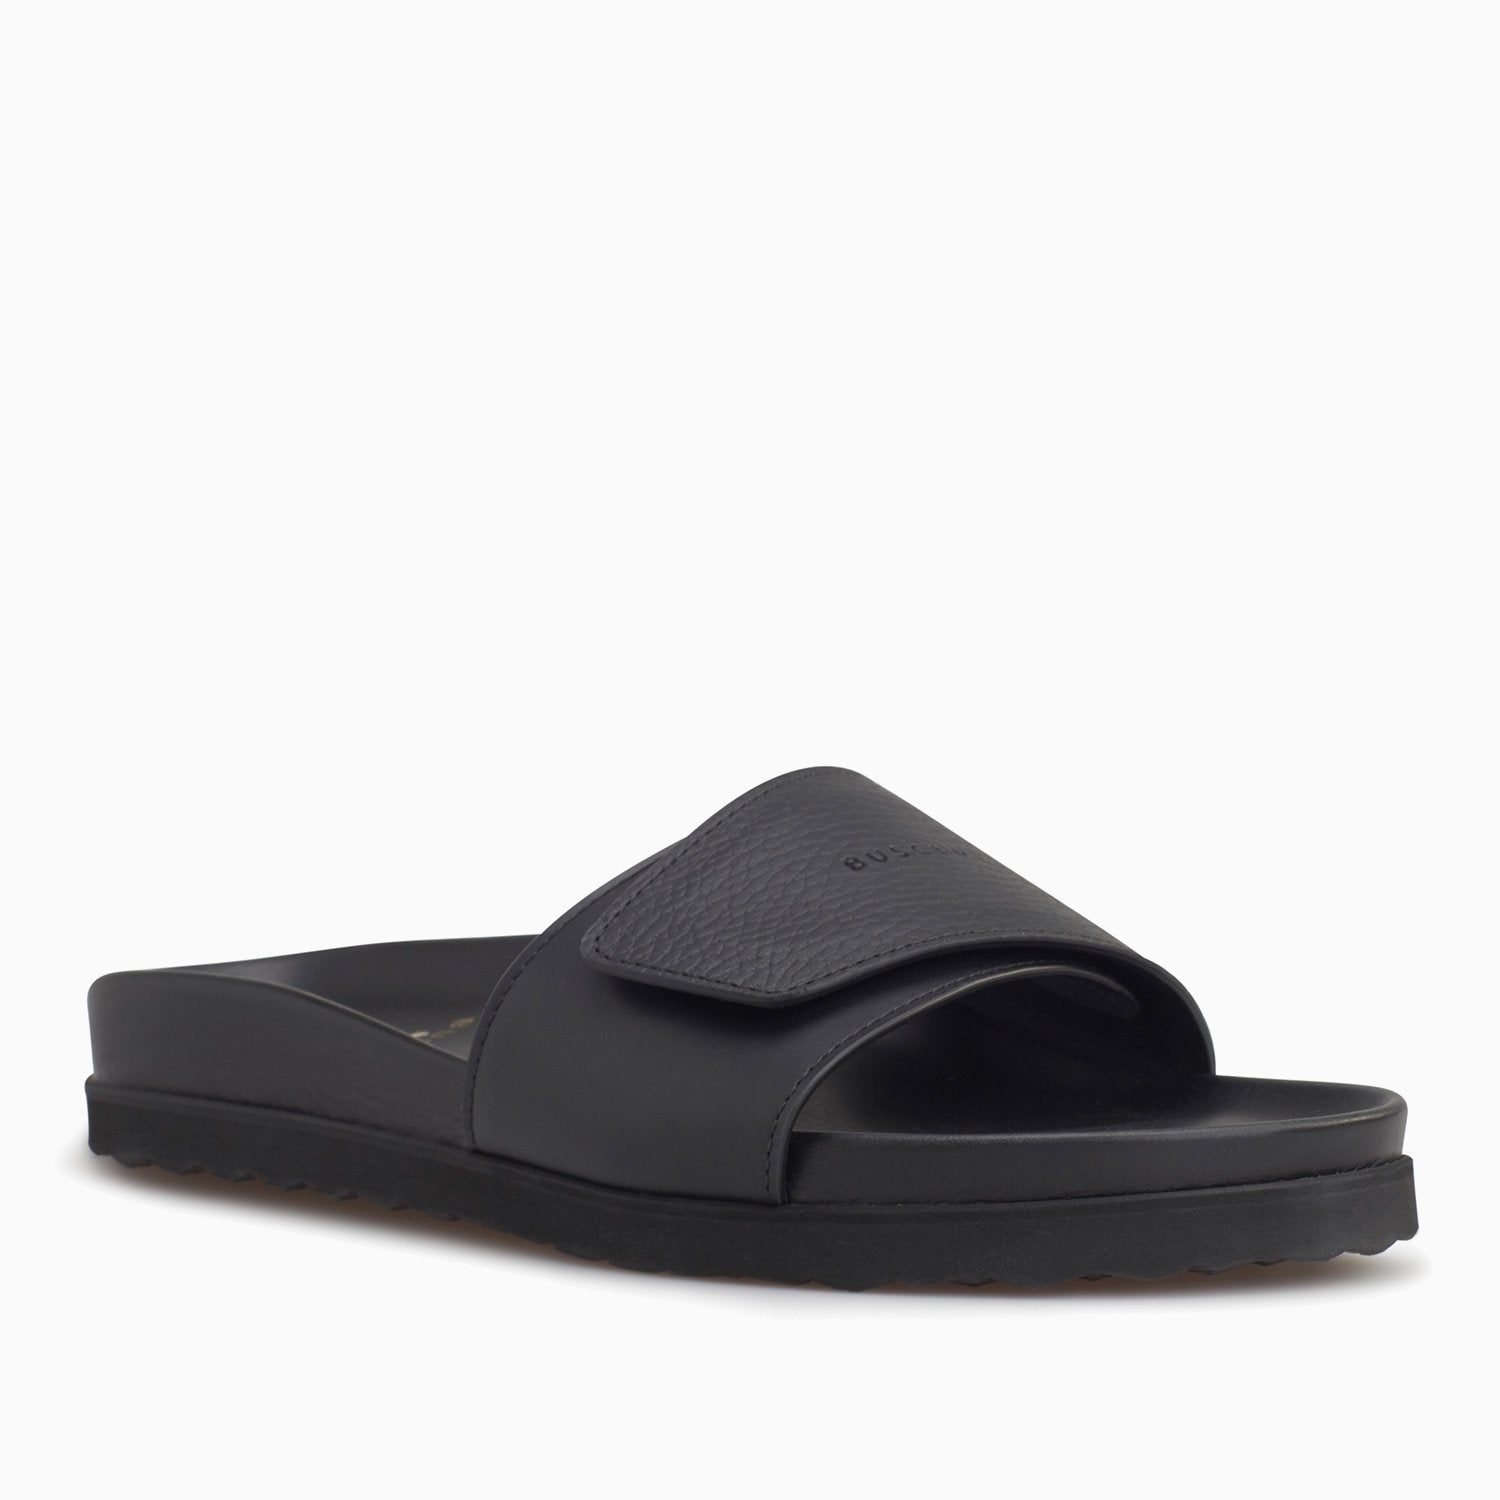 Women's Slides Scratch | Black-Buscemi